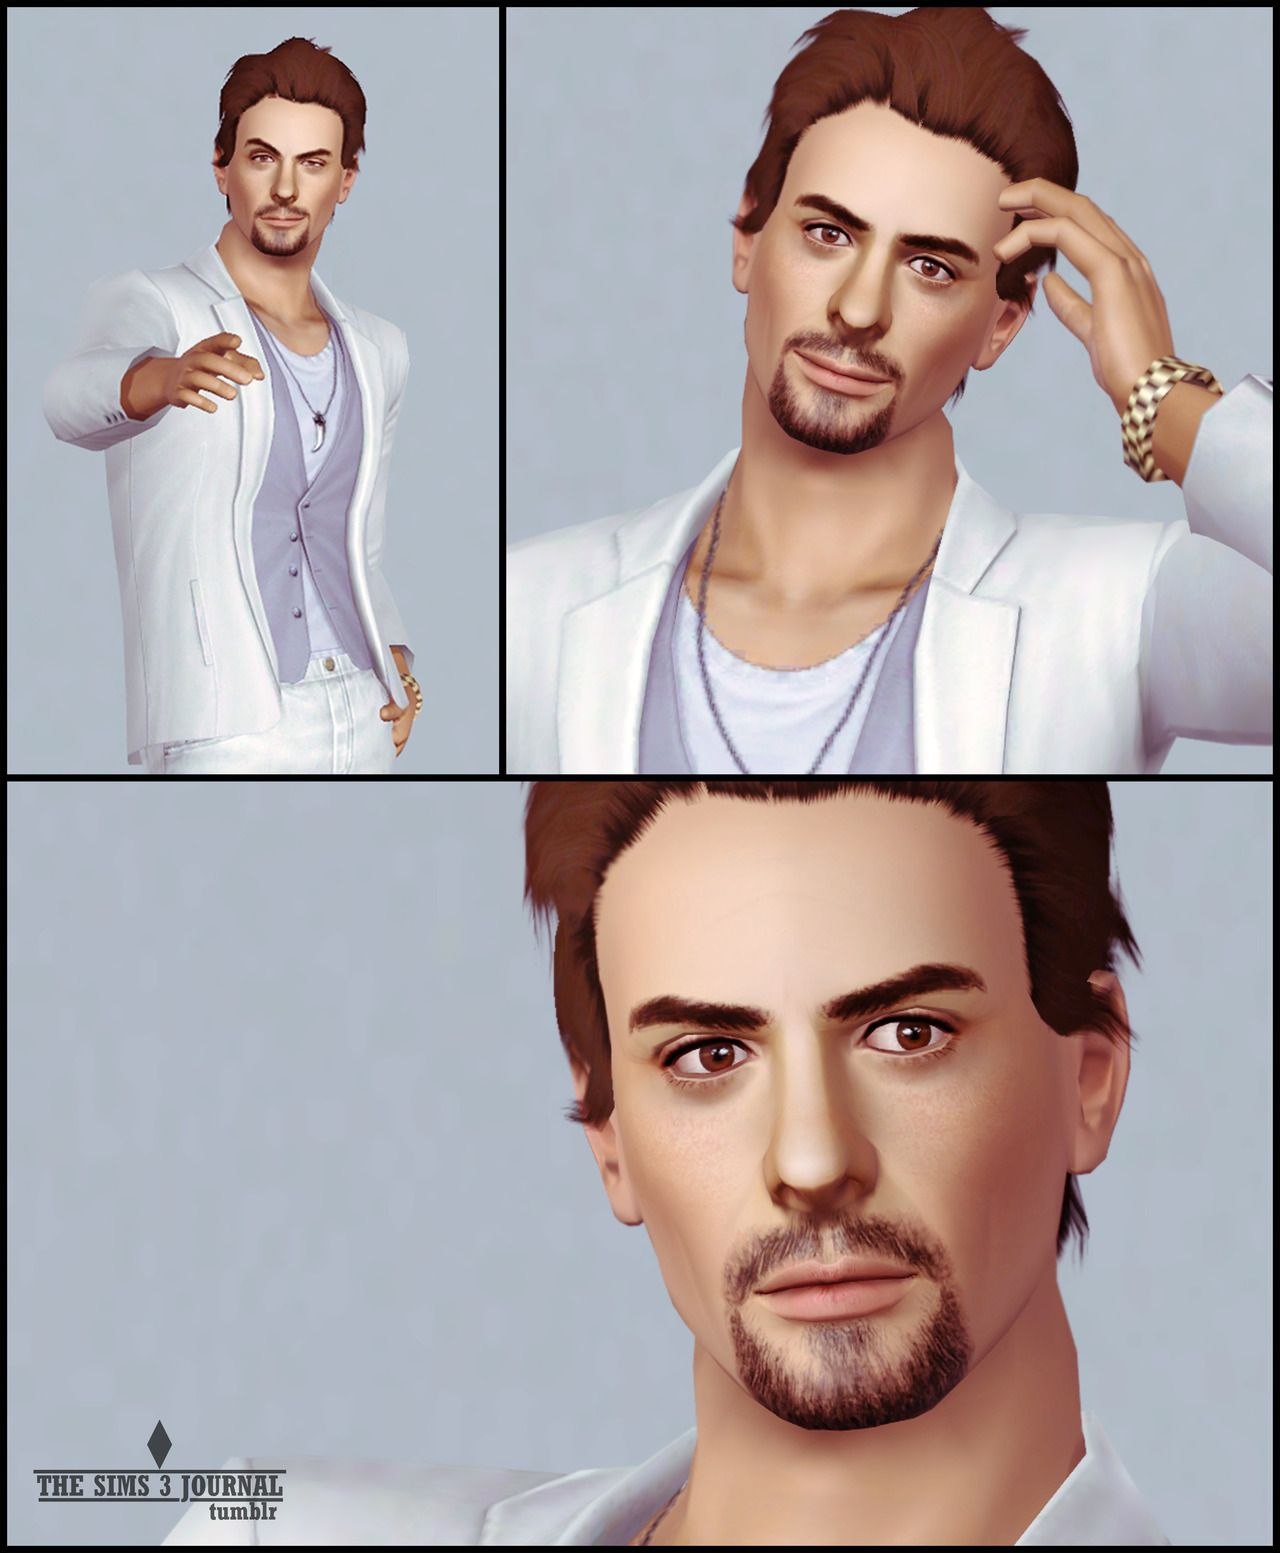 Robert Downey Jr The Sims 3 Journal The Sims 3 Marvel